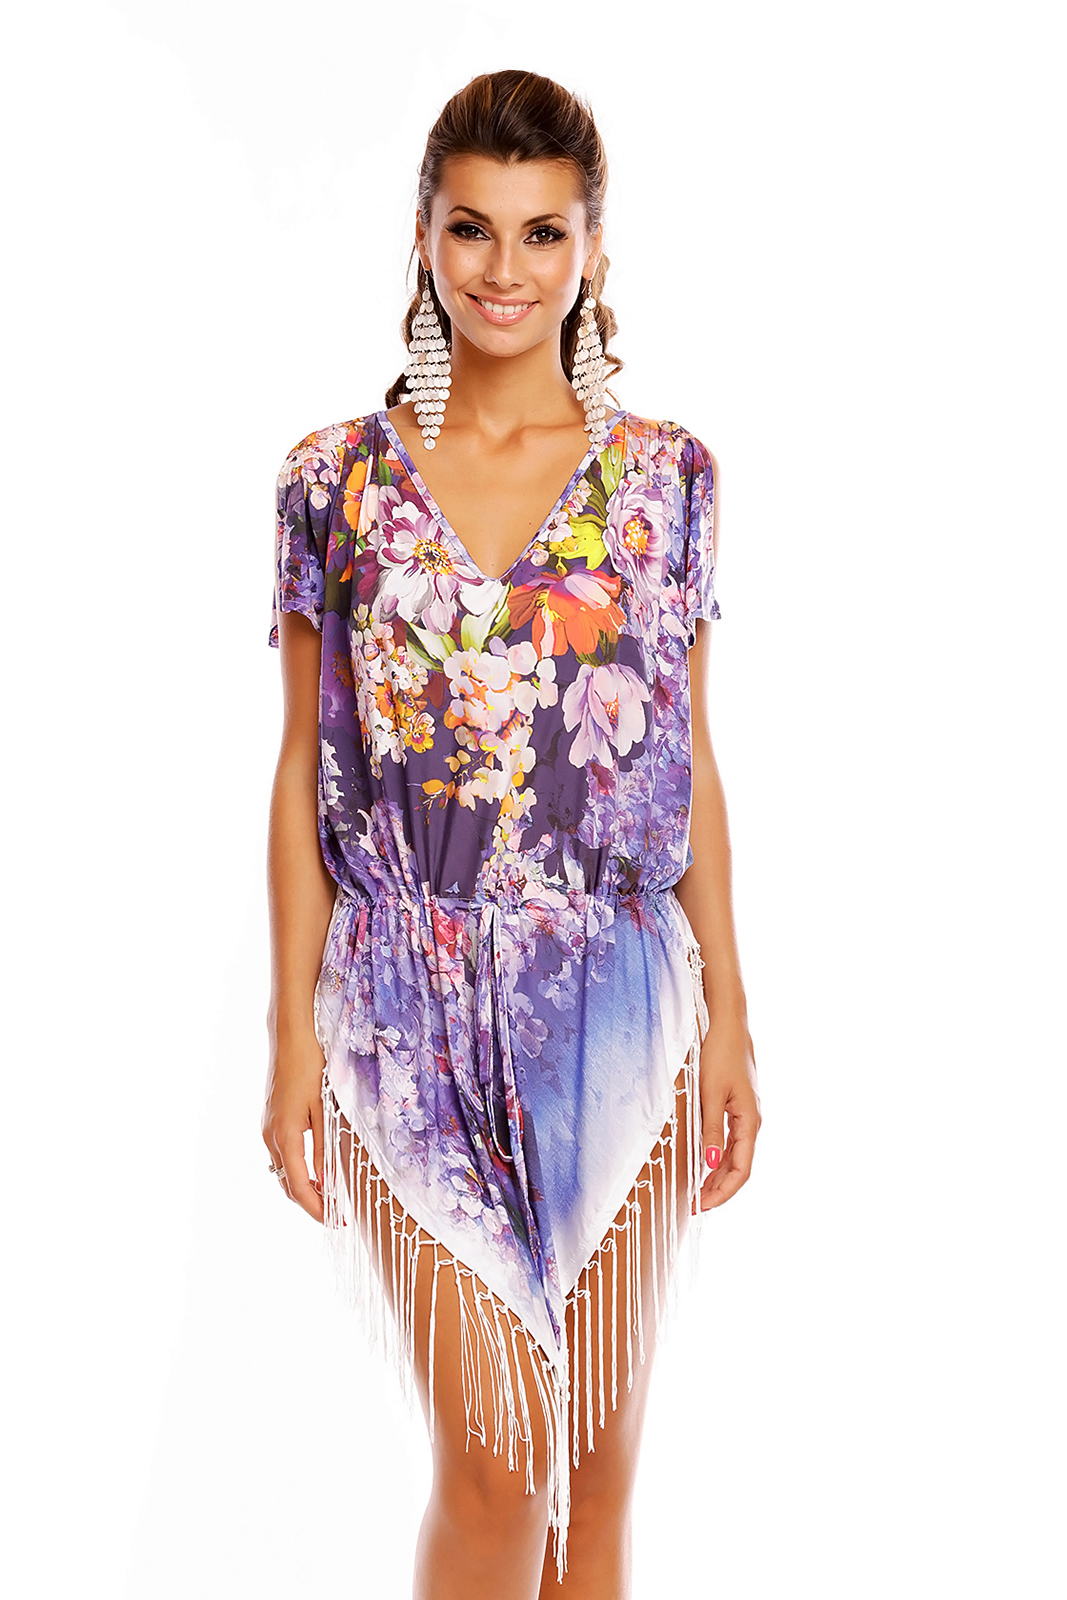 Ladies Summer Tunic Kaftan Pool Beach Cover Up